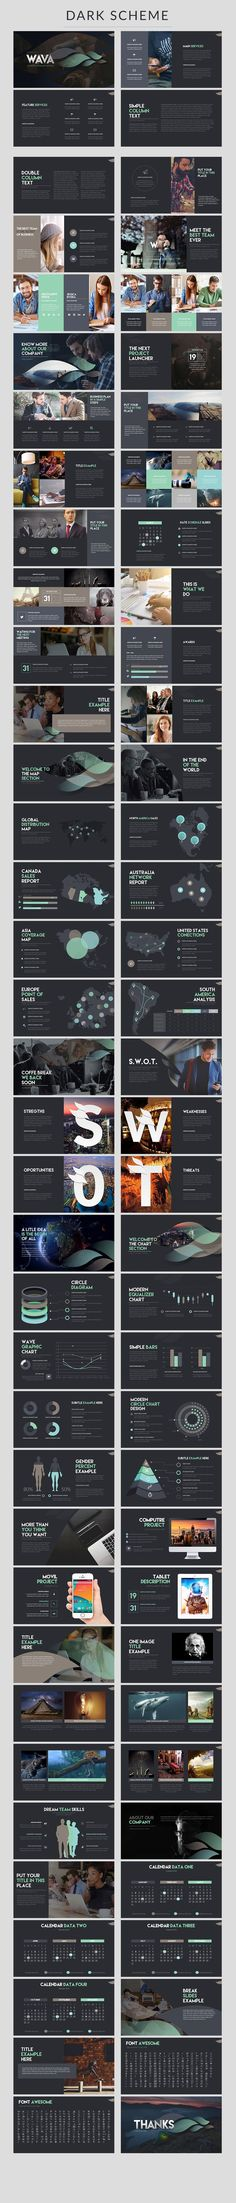 Explore more than presentation templates to use for PowerPoint, Keynote, infographics, pitchdecks, and digital marketing. Web Design, Slide Design, Layout Design, Graphic Design, Powerpoint Design Templates, Keynote Template, Presentation Layout, Presentation Templates, Image Infographics